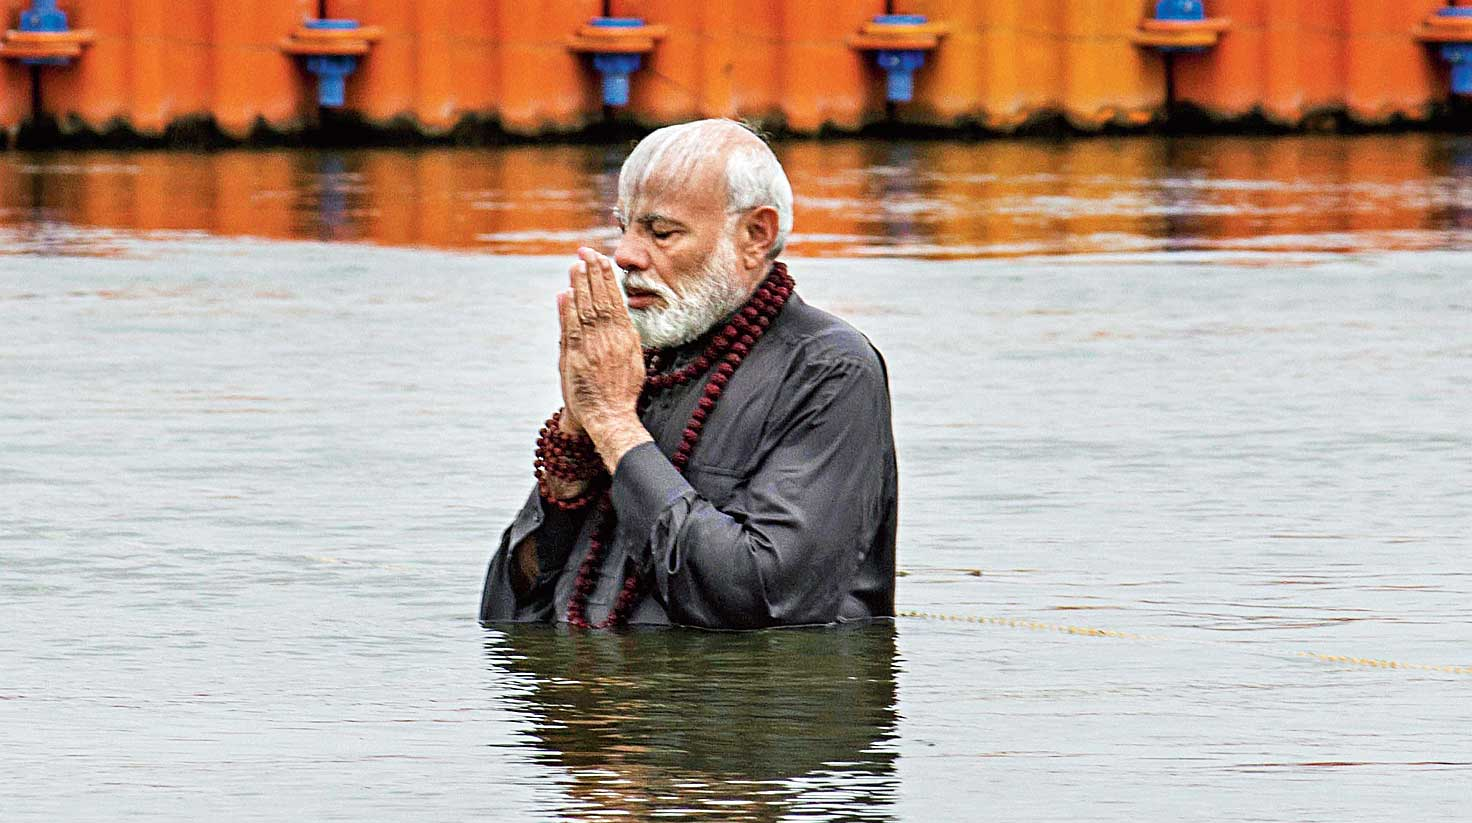 Prime Minister Narendra Modi takes a holy dip at the Sangam during the Ardh Kumbh Mela in Allahabad on Sunday. Modi later washed the feet of five persons employed as sweepers by the Allahabad municipality and said the moment would remain with him.